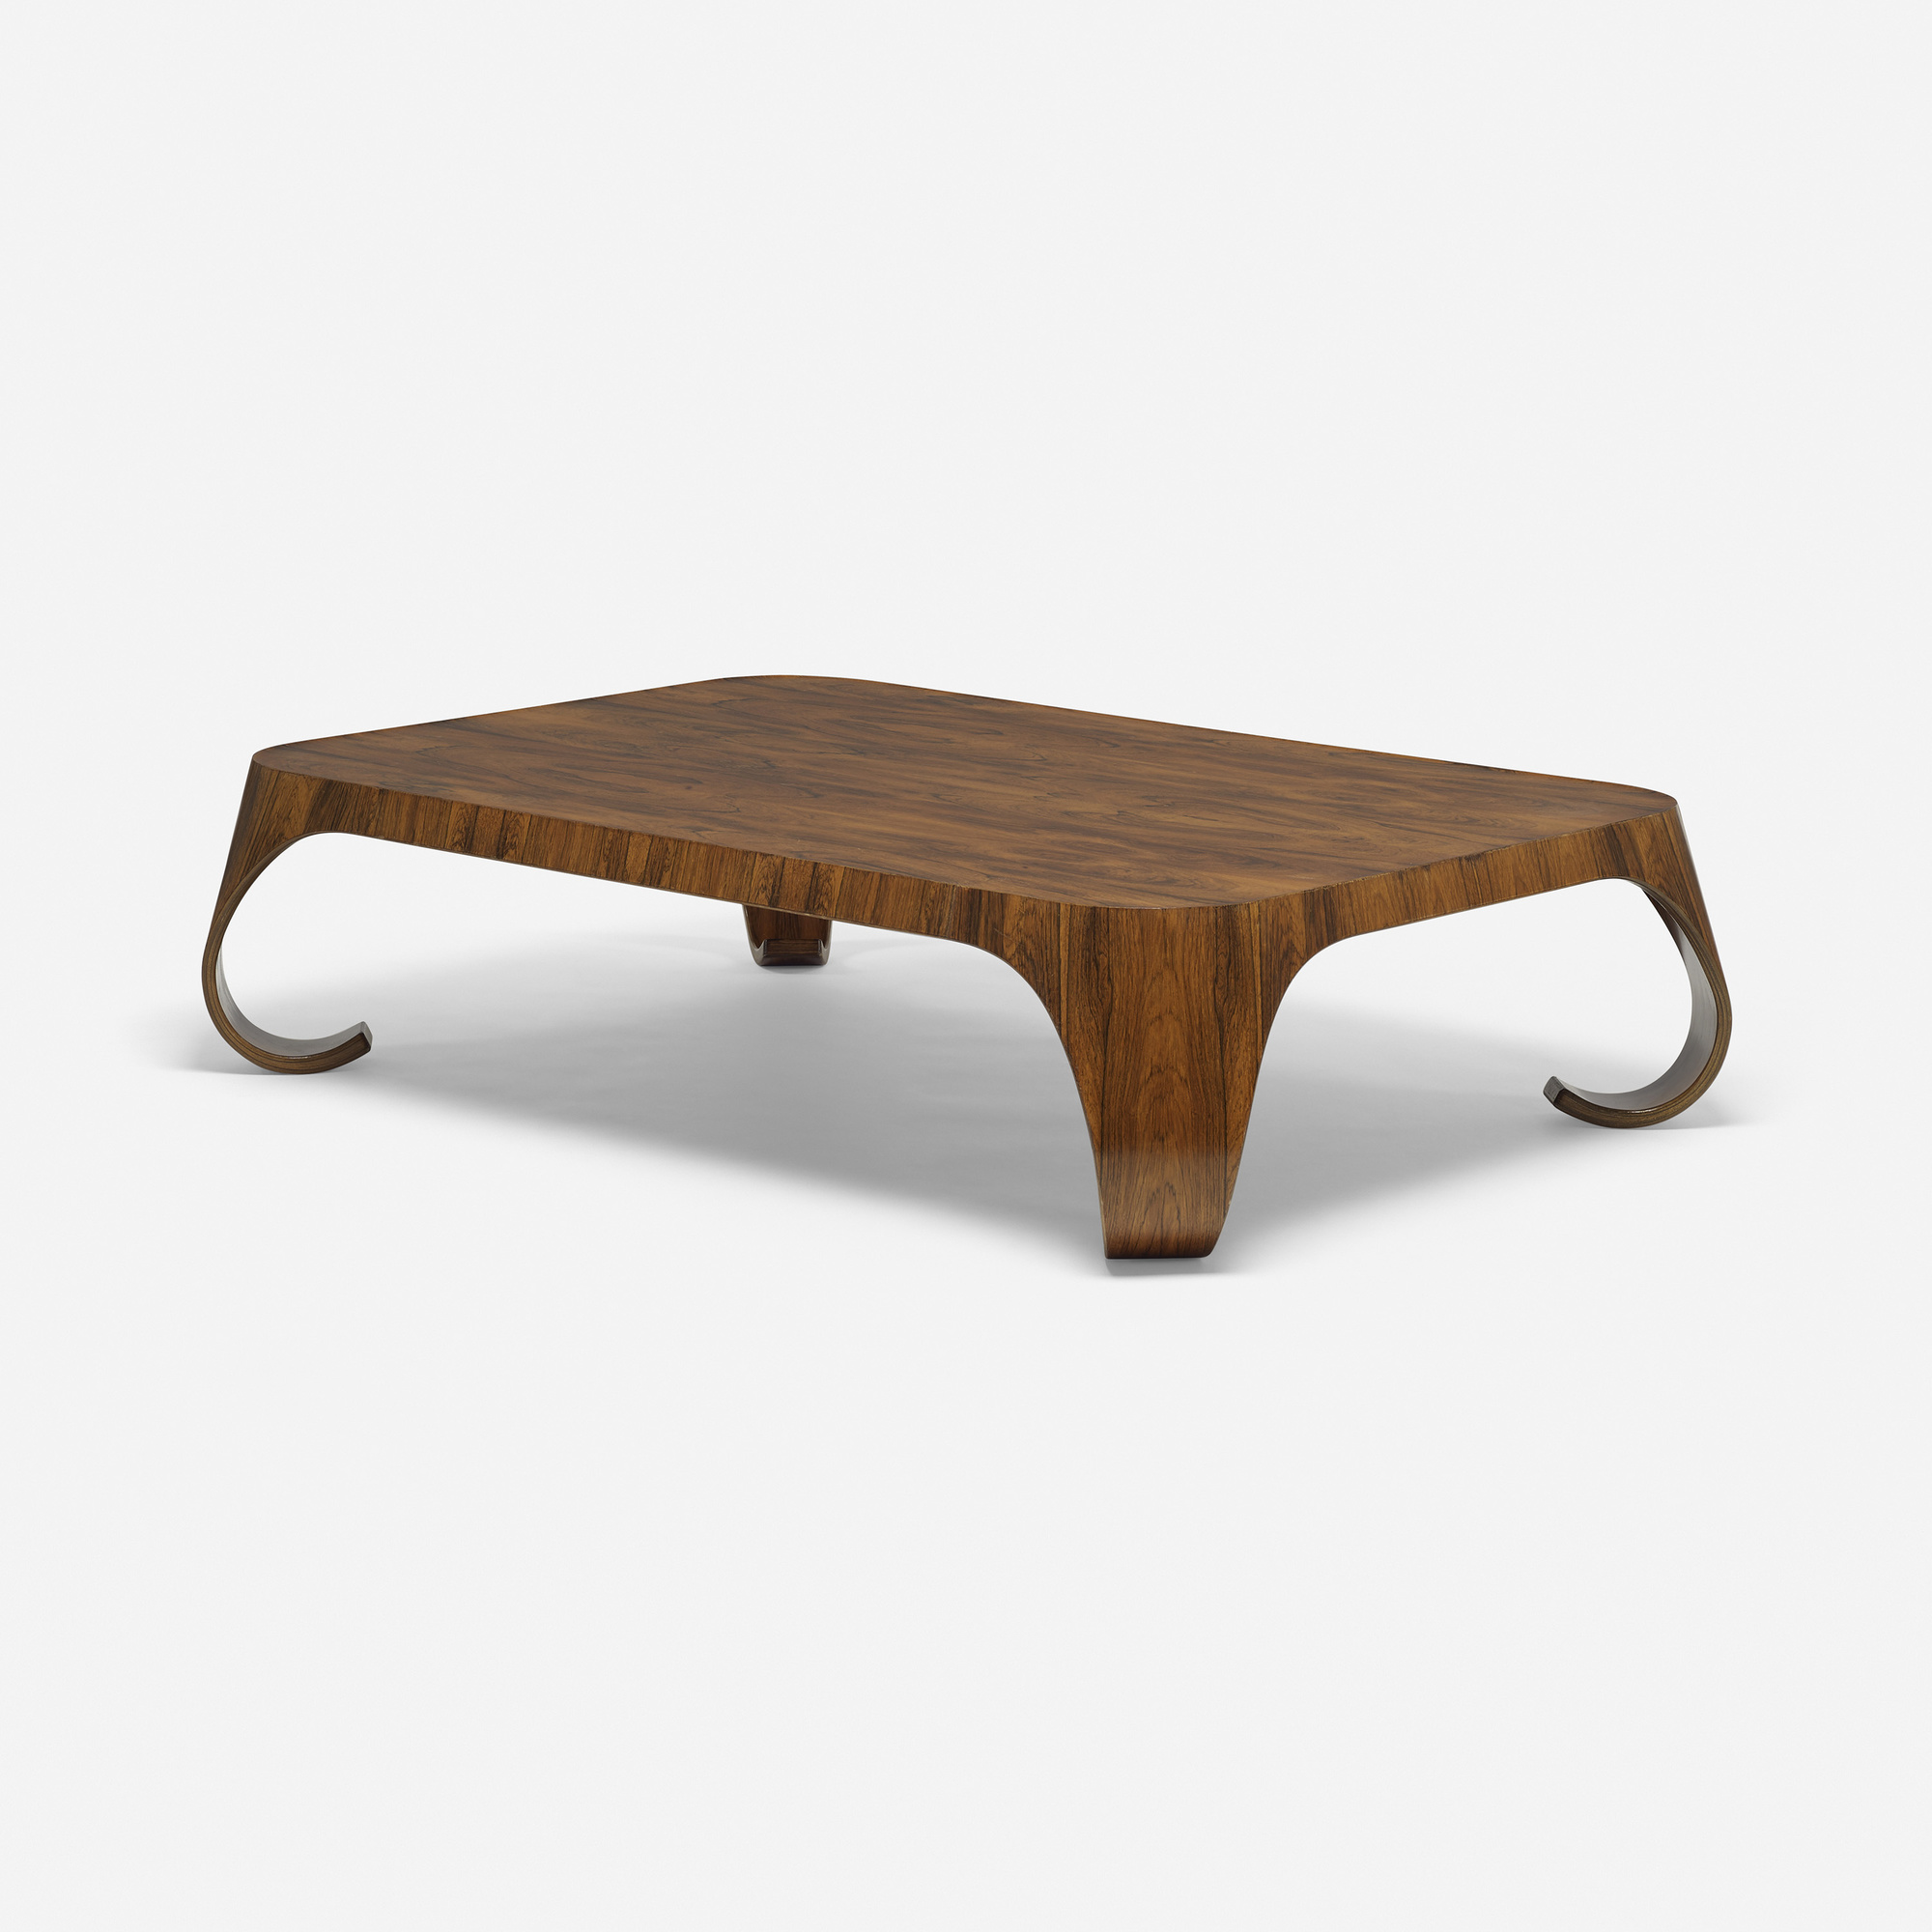 299 isamu kenmochi coffee table for Table design 2015